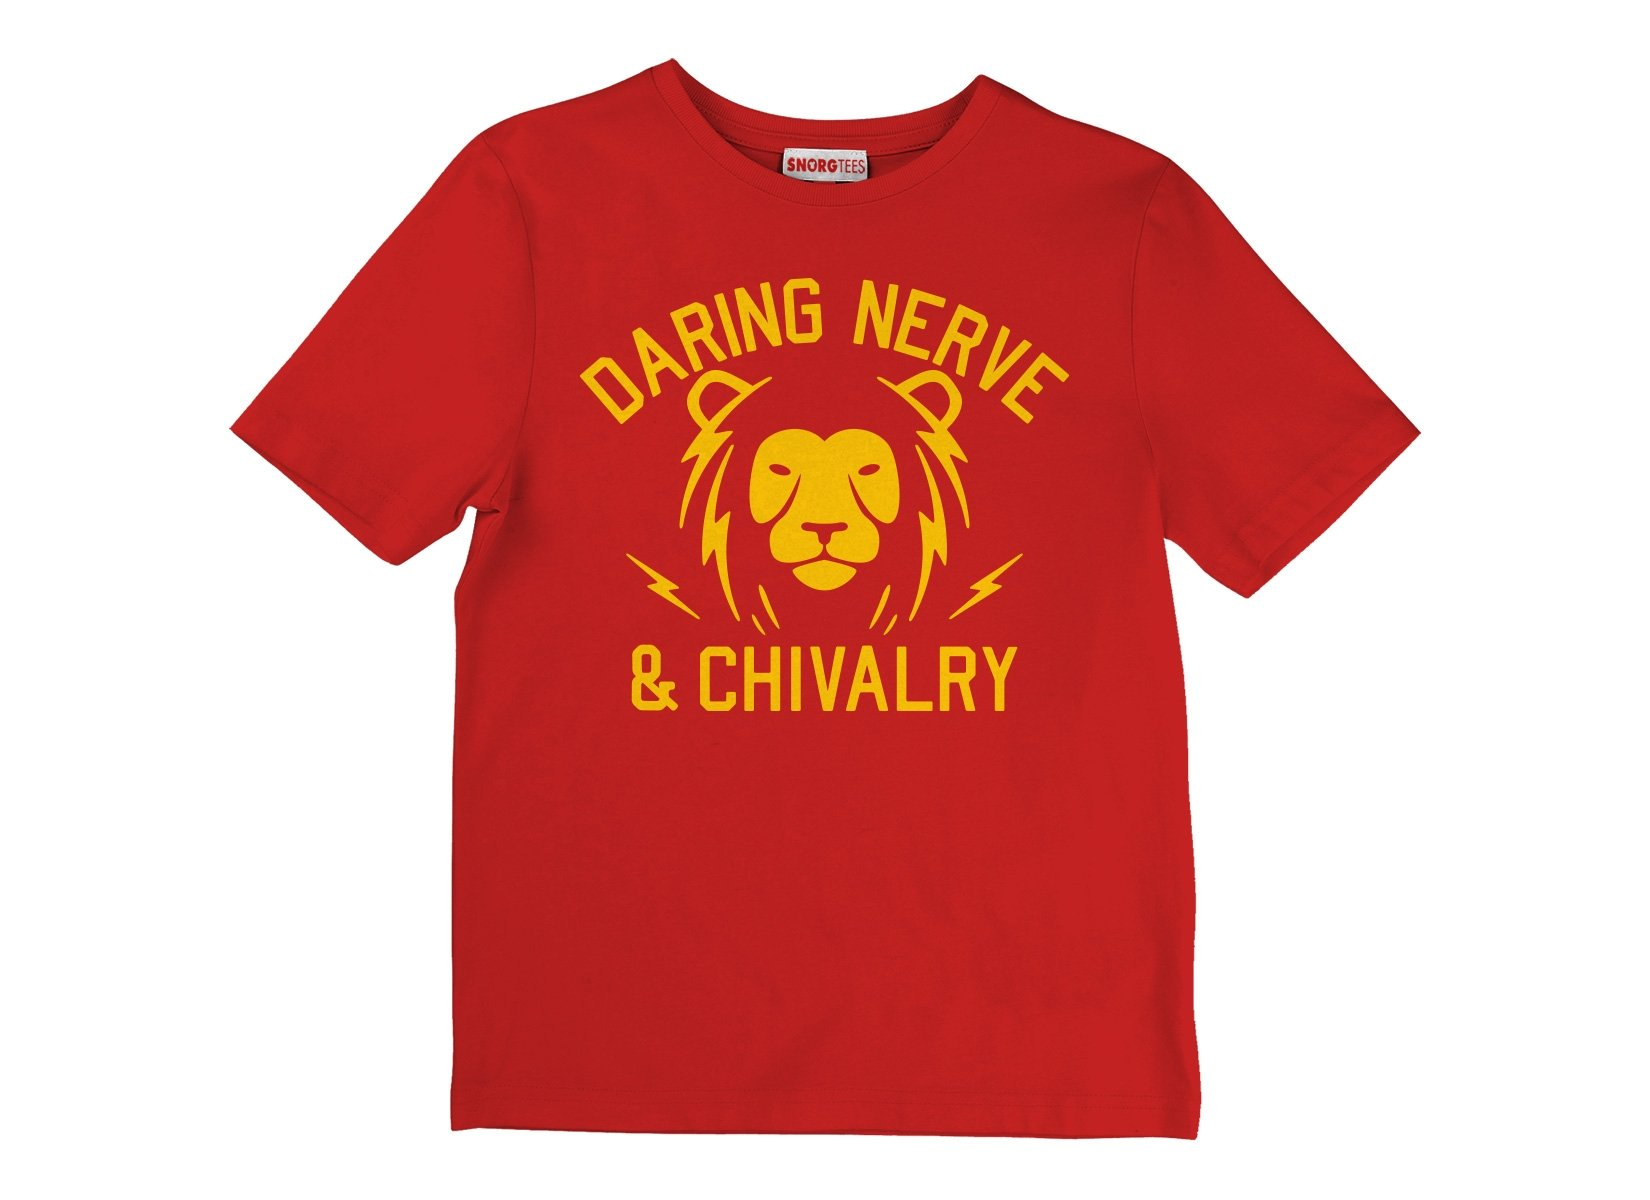 Daring, Nerve, And Chivalry on Kids T-Shirt